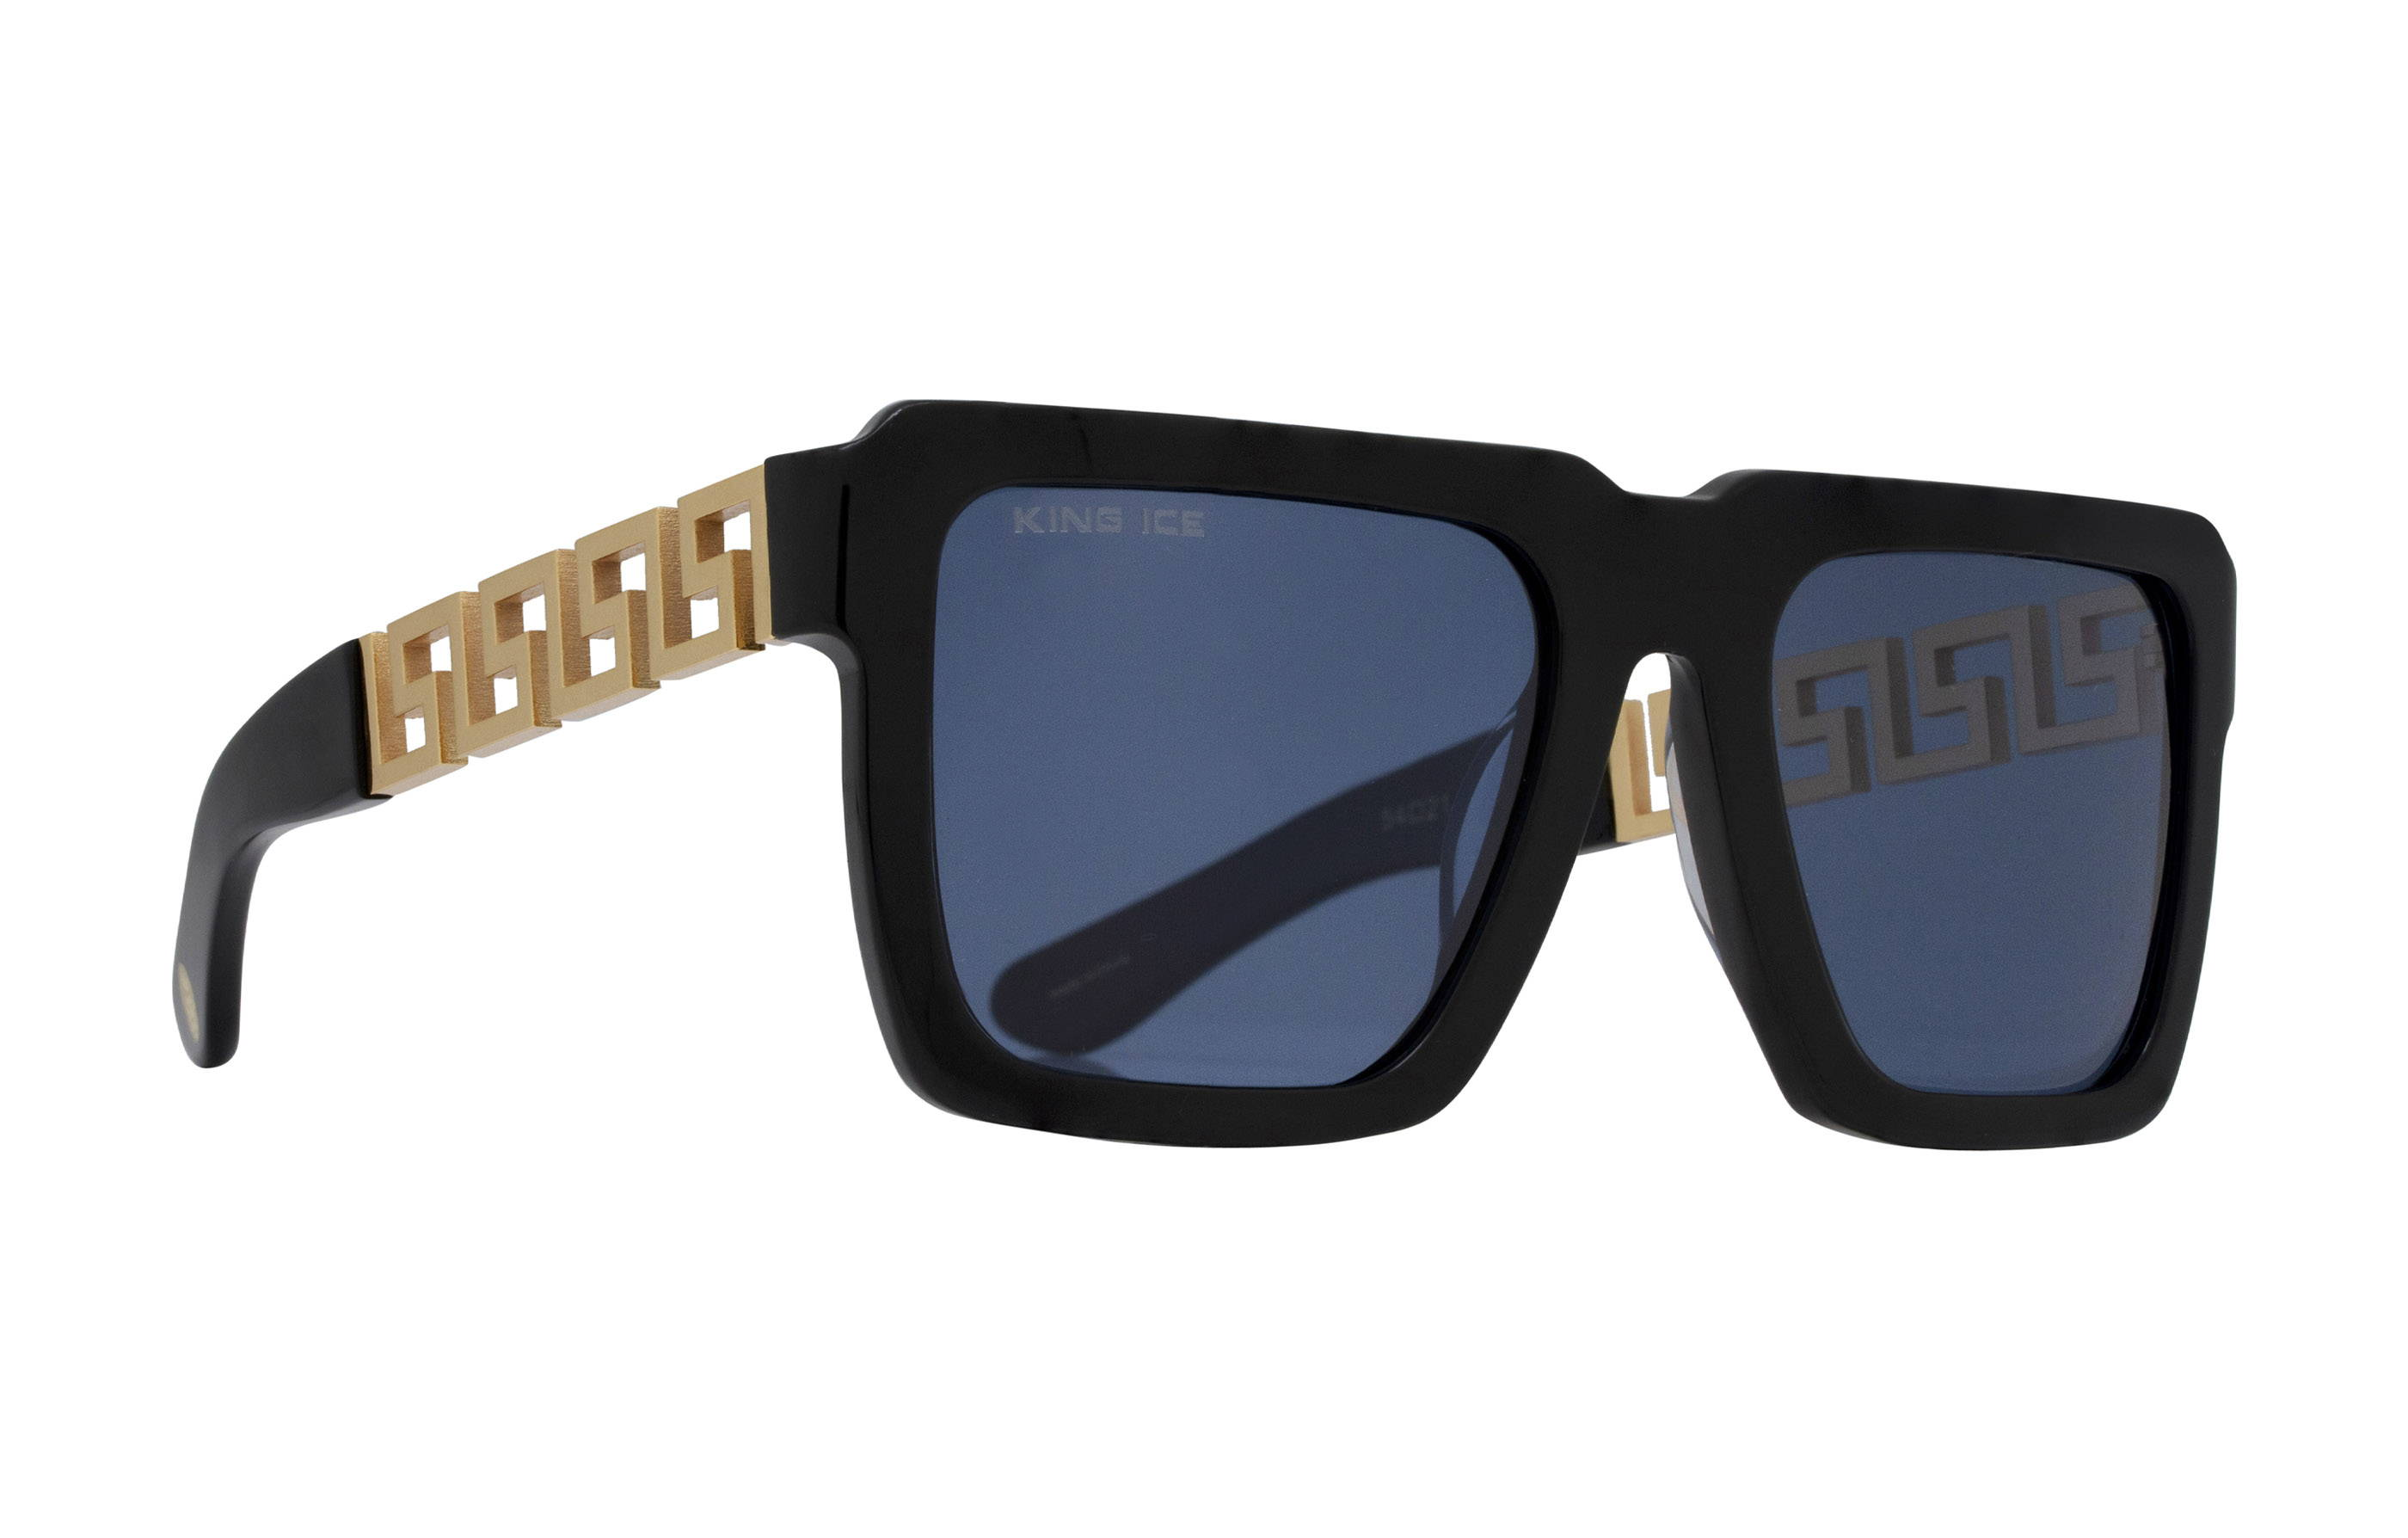 King Ice Greek Key Shades with Glossy Black Frame & Blue Tint Lenses